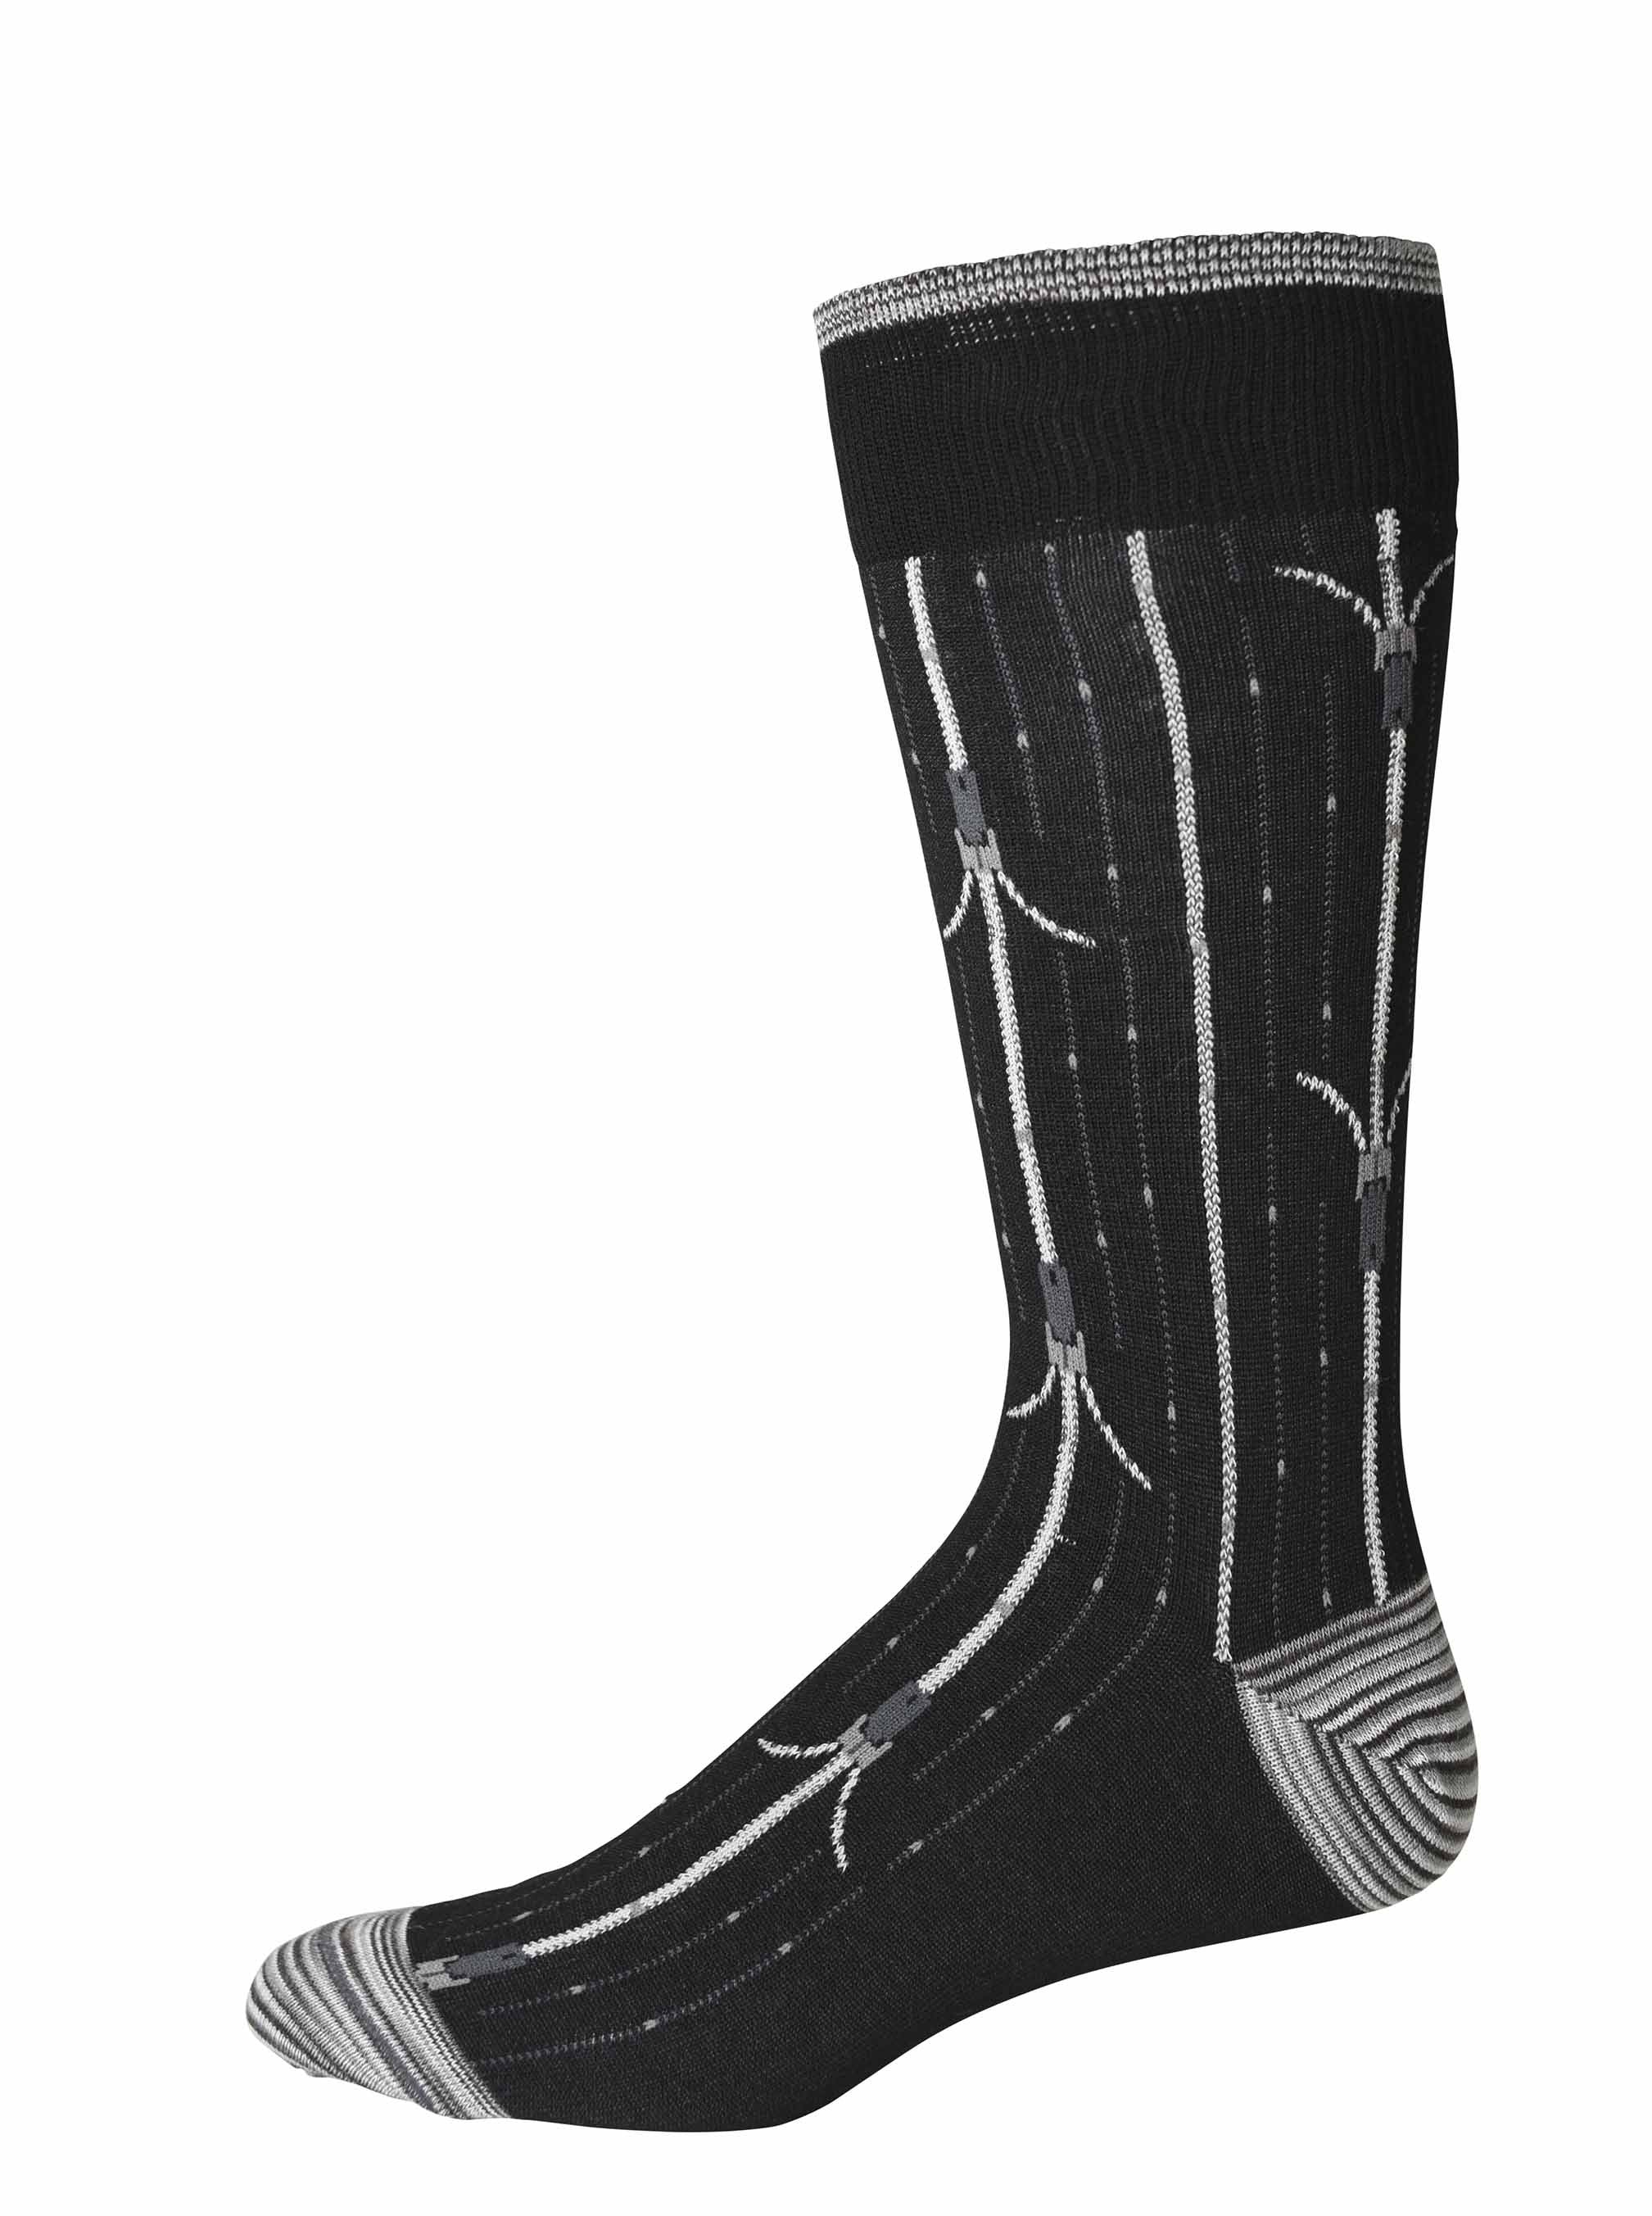 BERGMAN SOCKS - BLACK